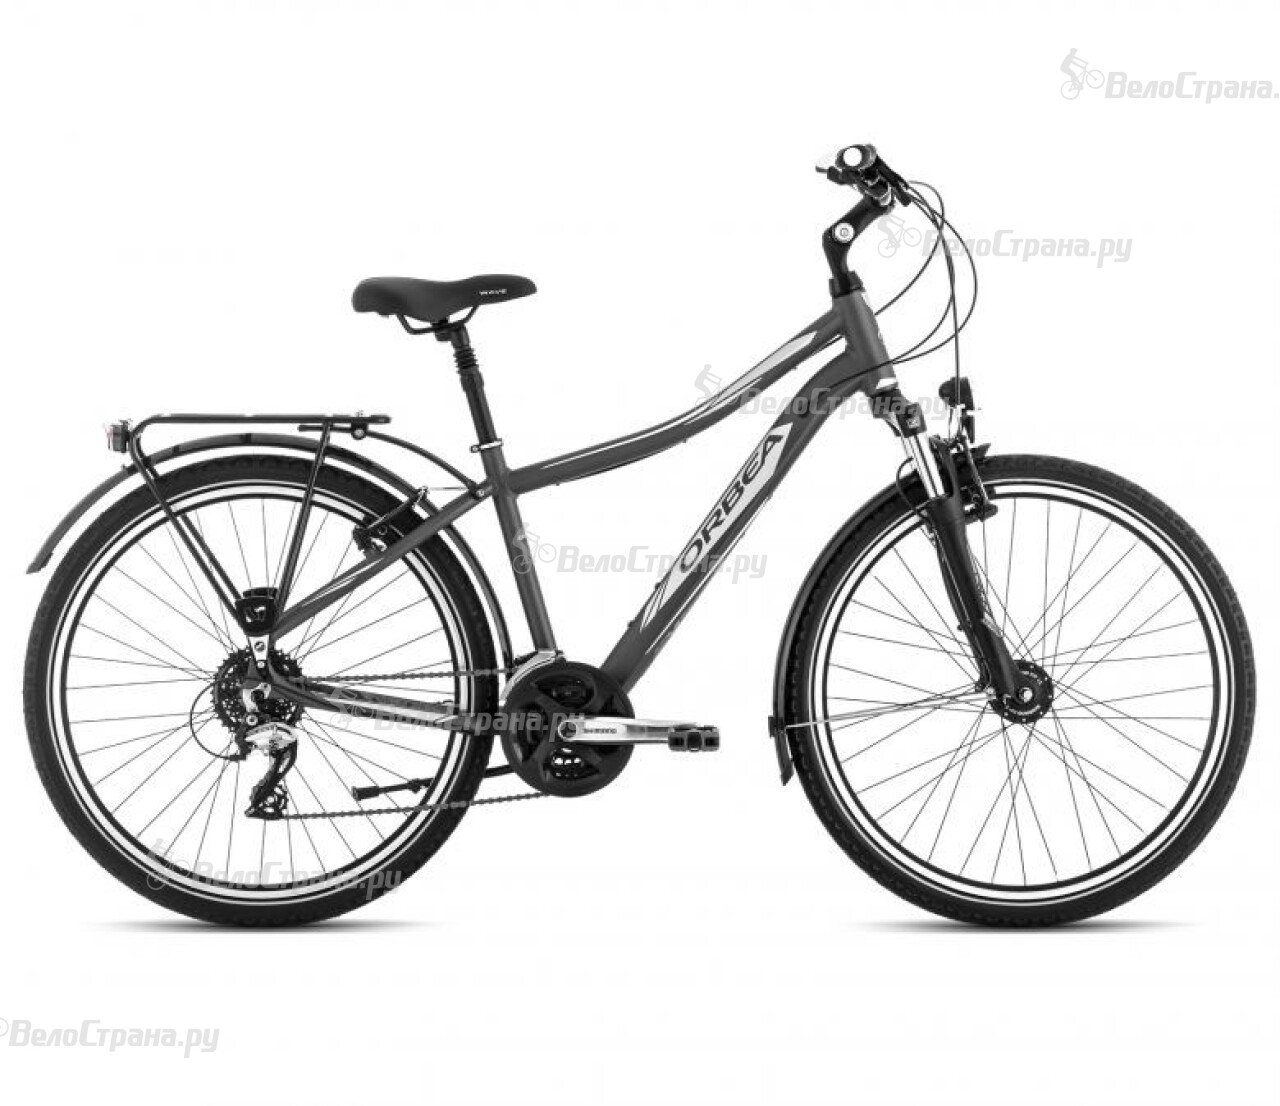 Велосипед Orbea Comfort 26 20 Entrance Eq (2014)